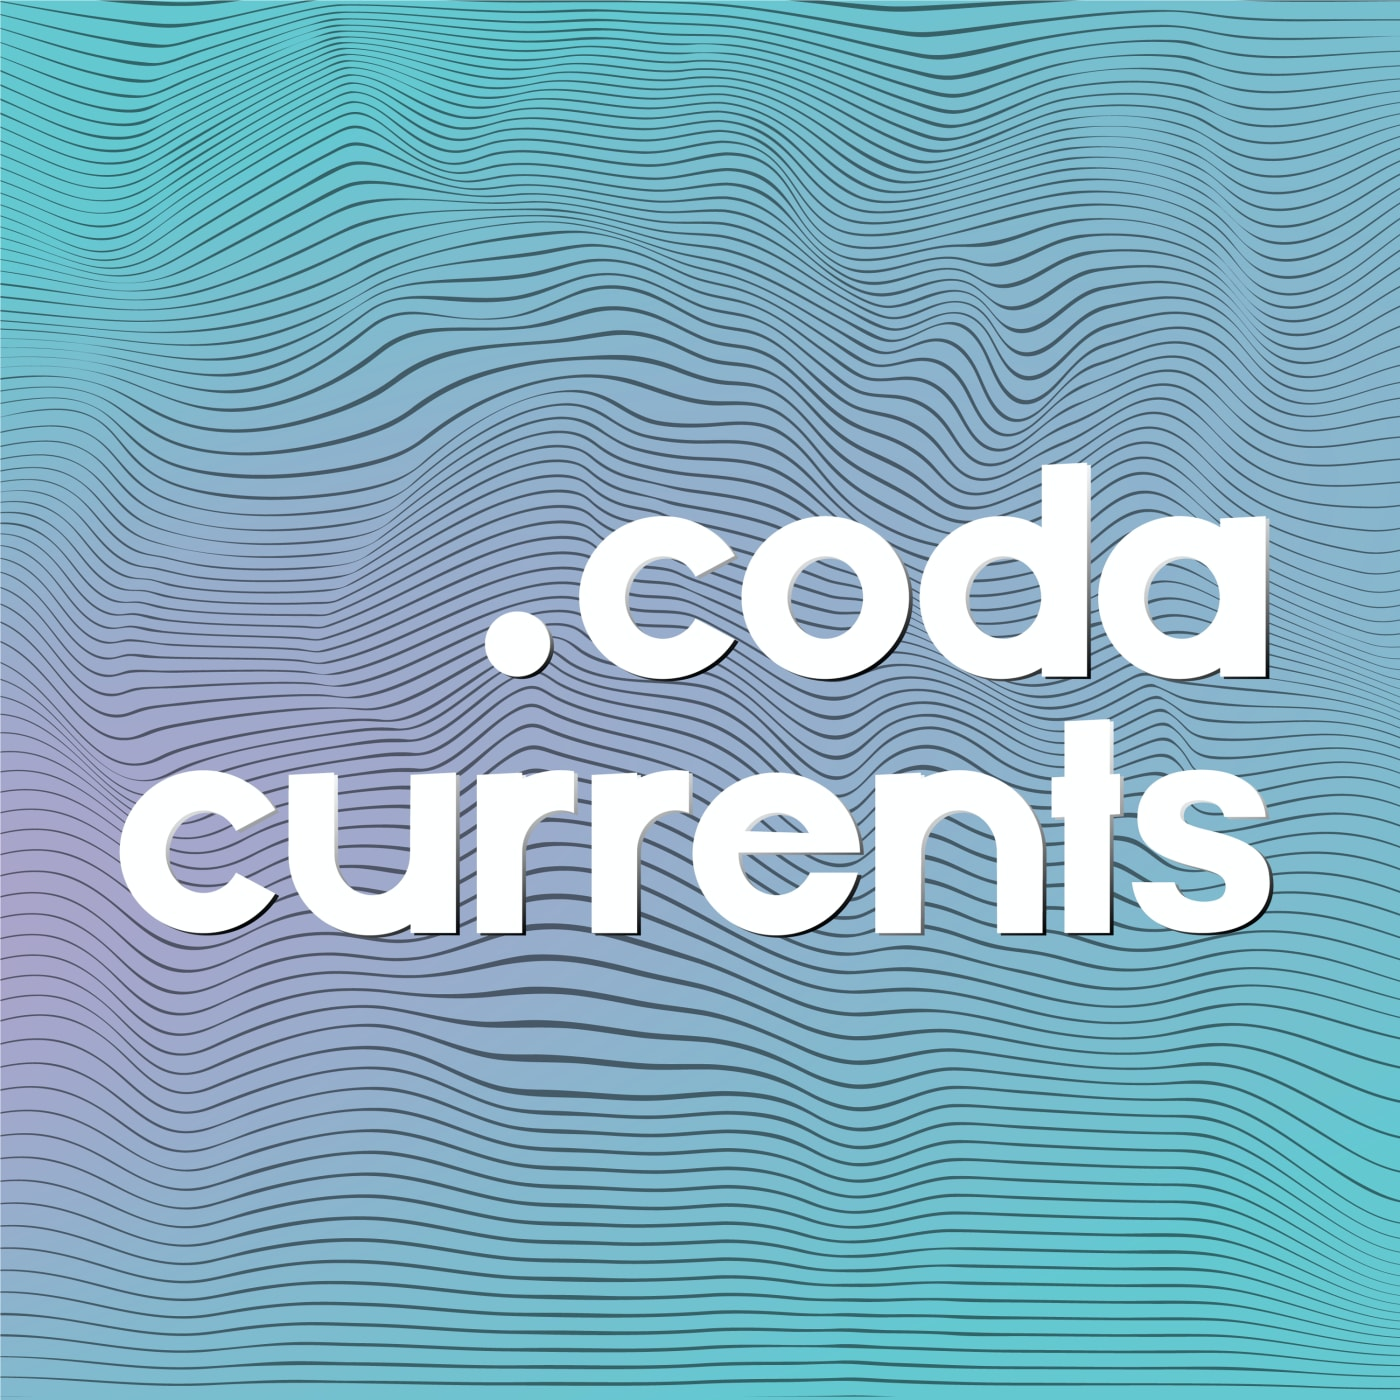 Coda Currents logo